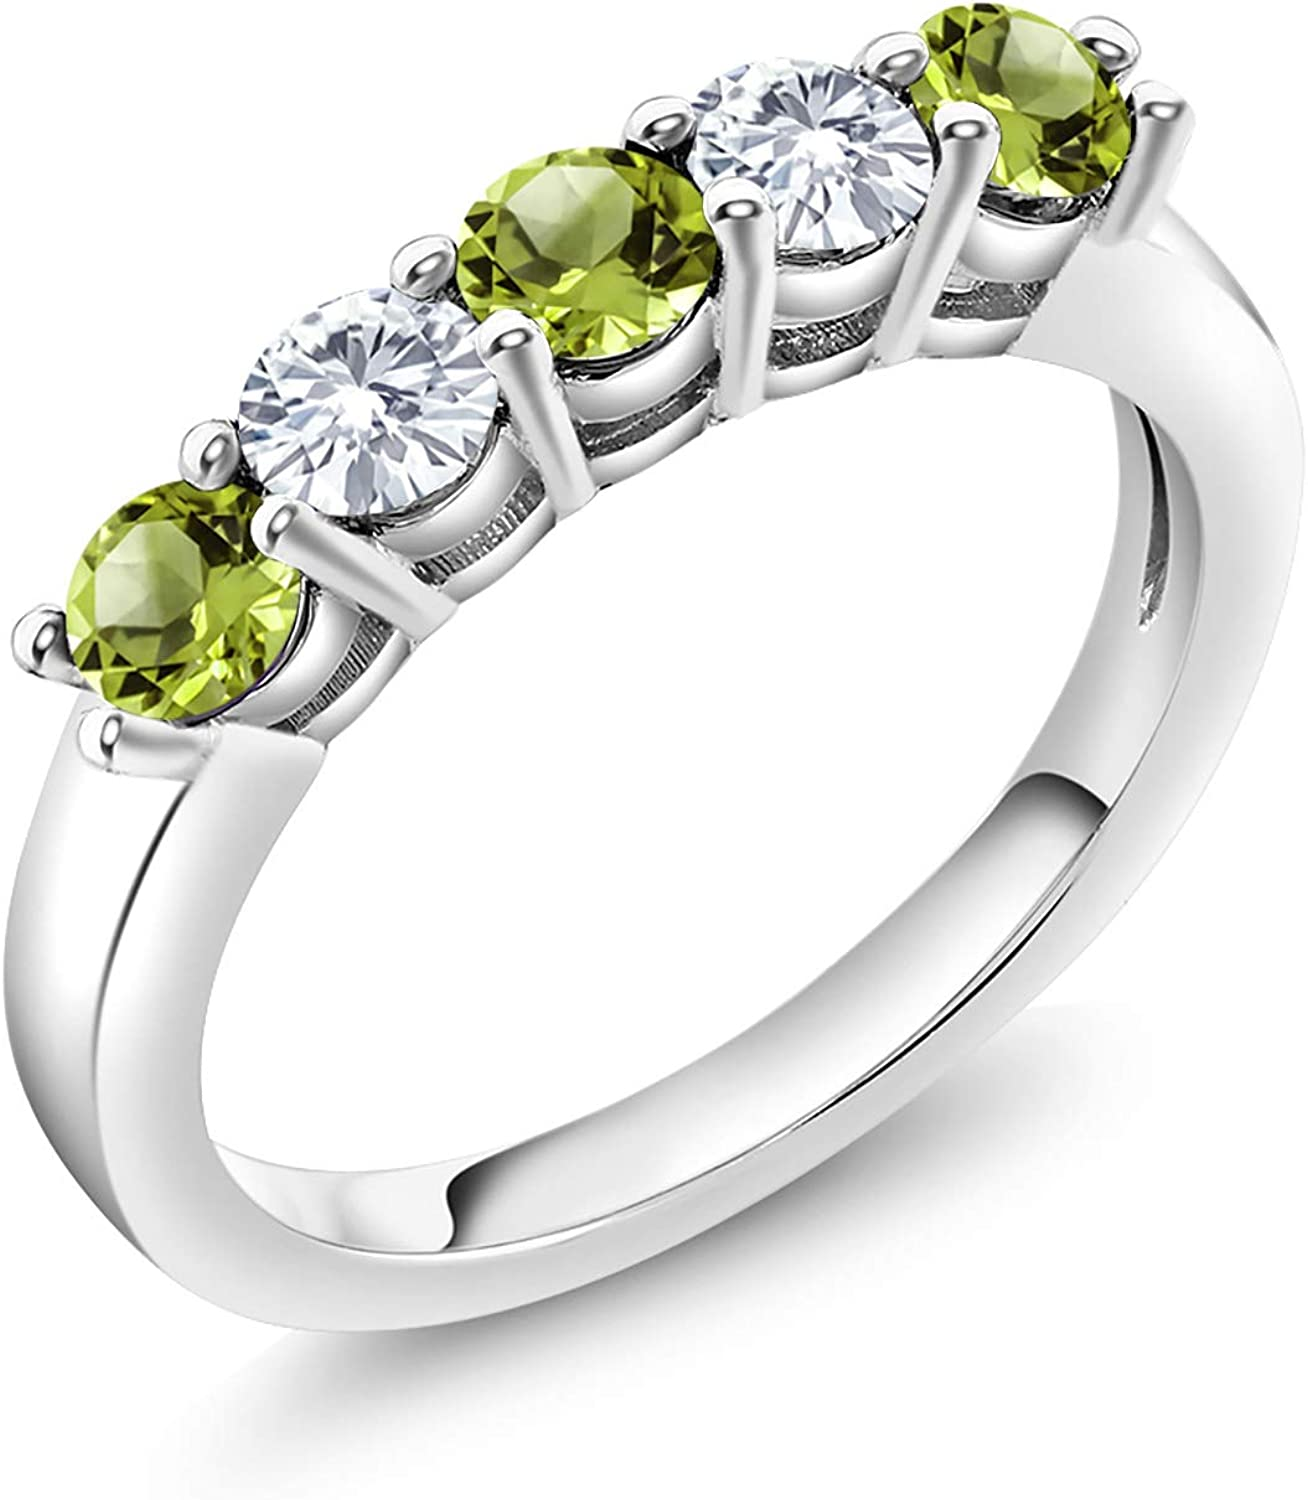 Gem Stone King 925 Sterling Silver Green Peridot and Timeless Br